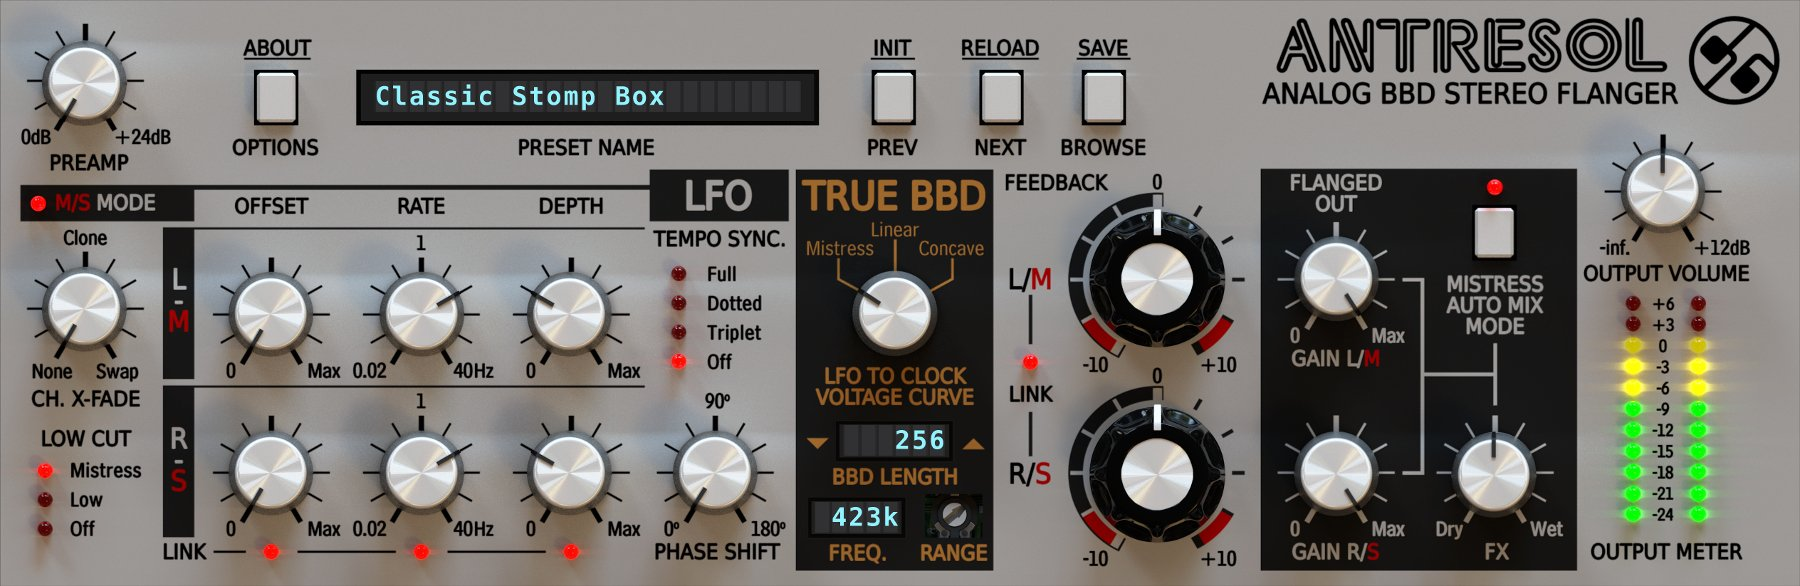 Analog Stereo Flanger Plug-in